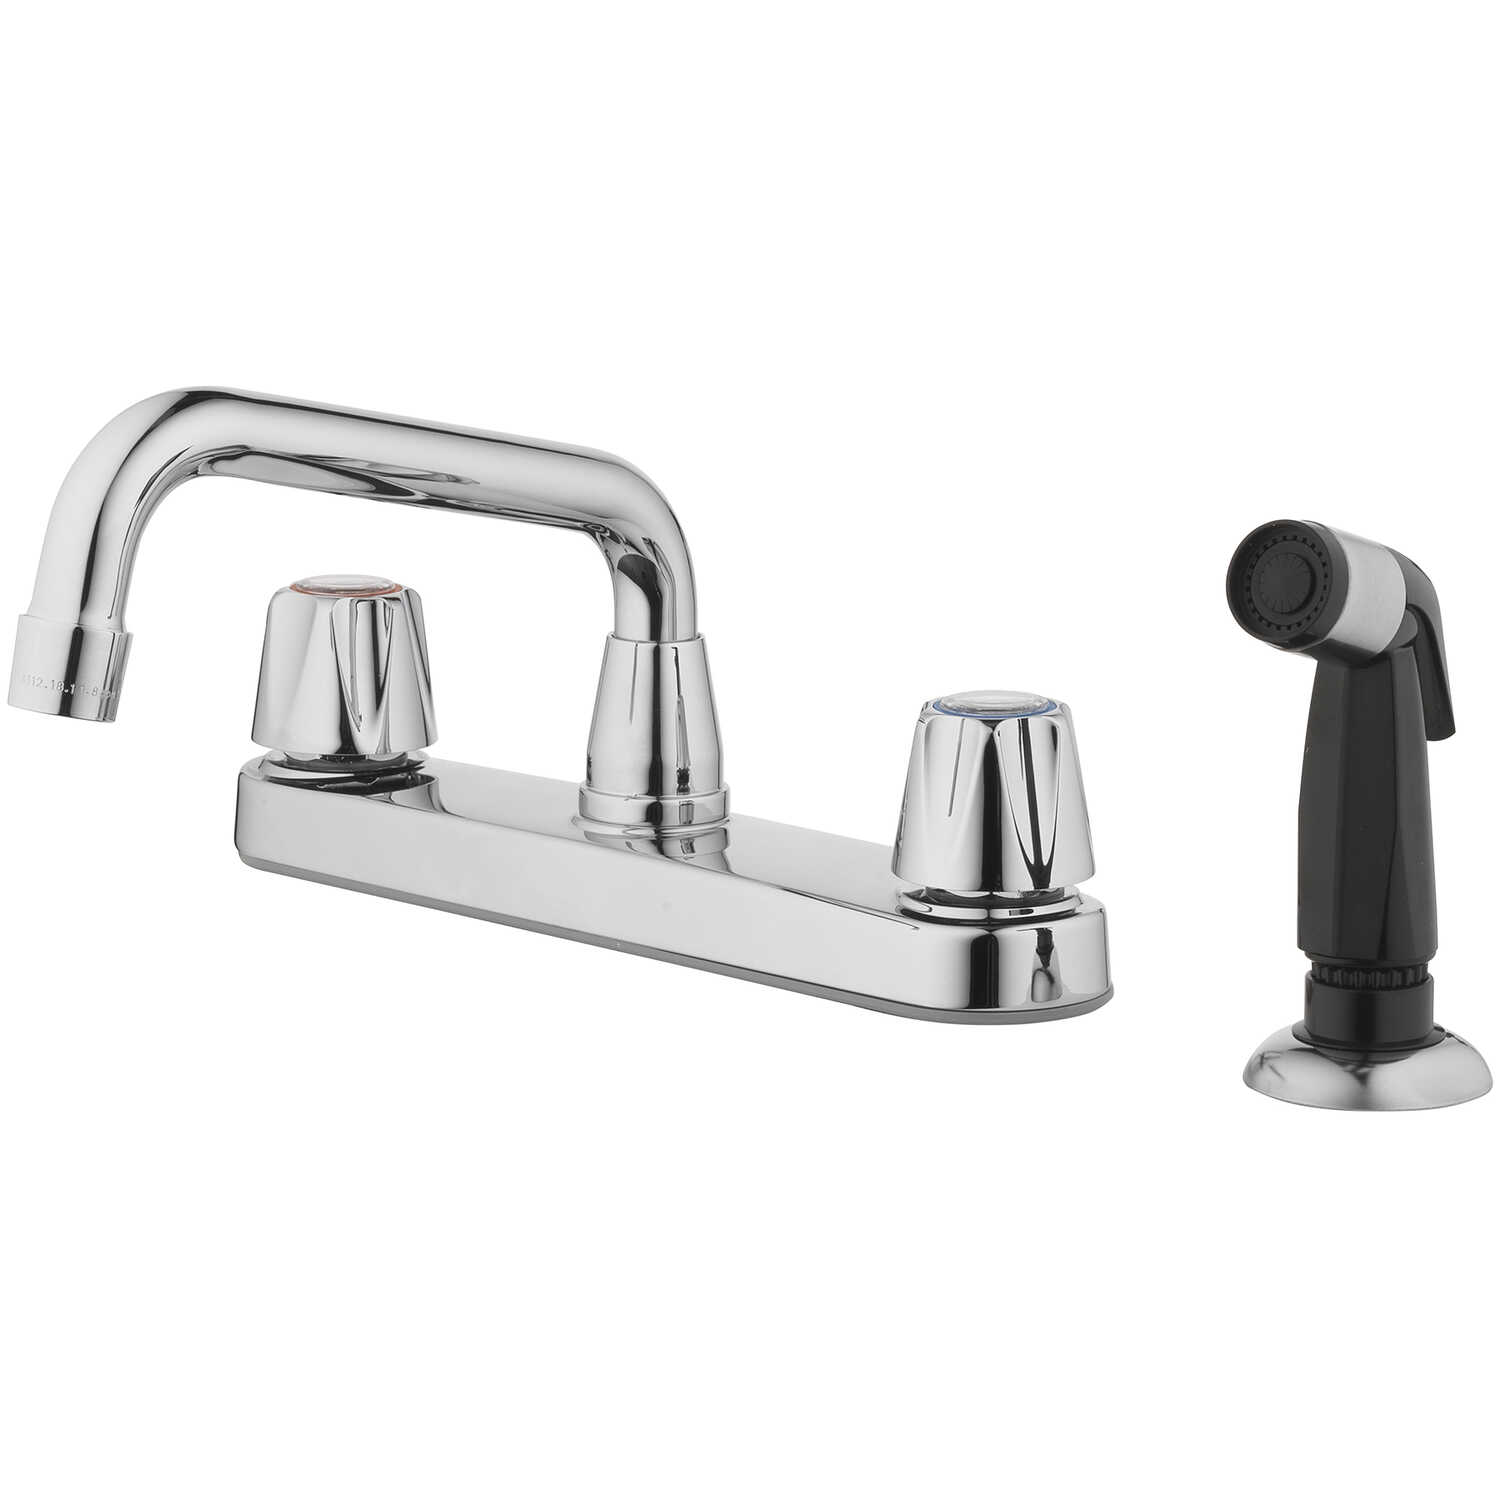 OakBrook  Compression  2 Handle Kitchen  Two Handle  Chrome  Kitchen Faucet  Side Sprayer Included